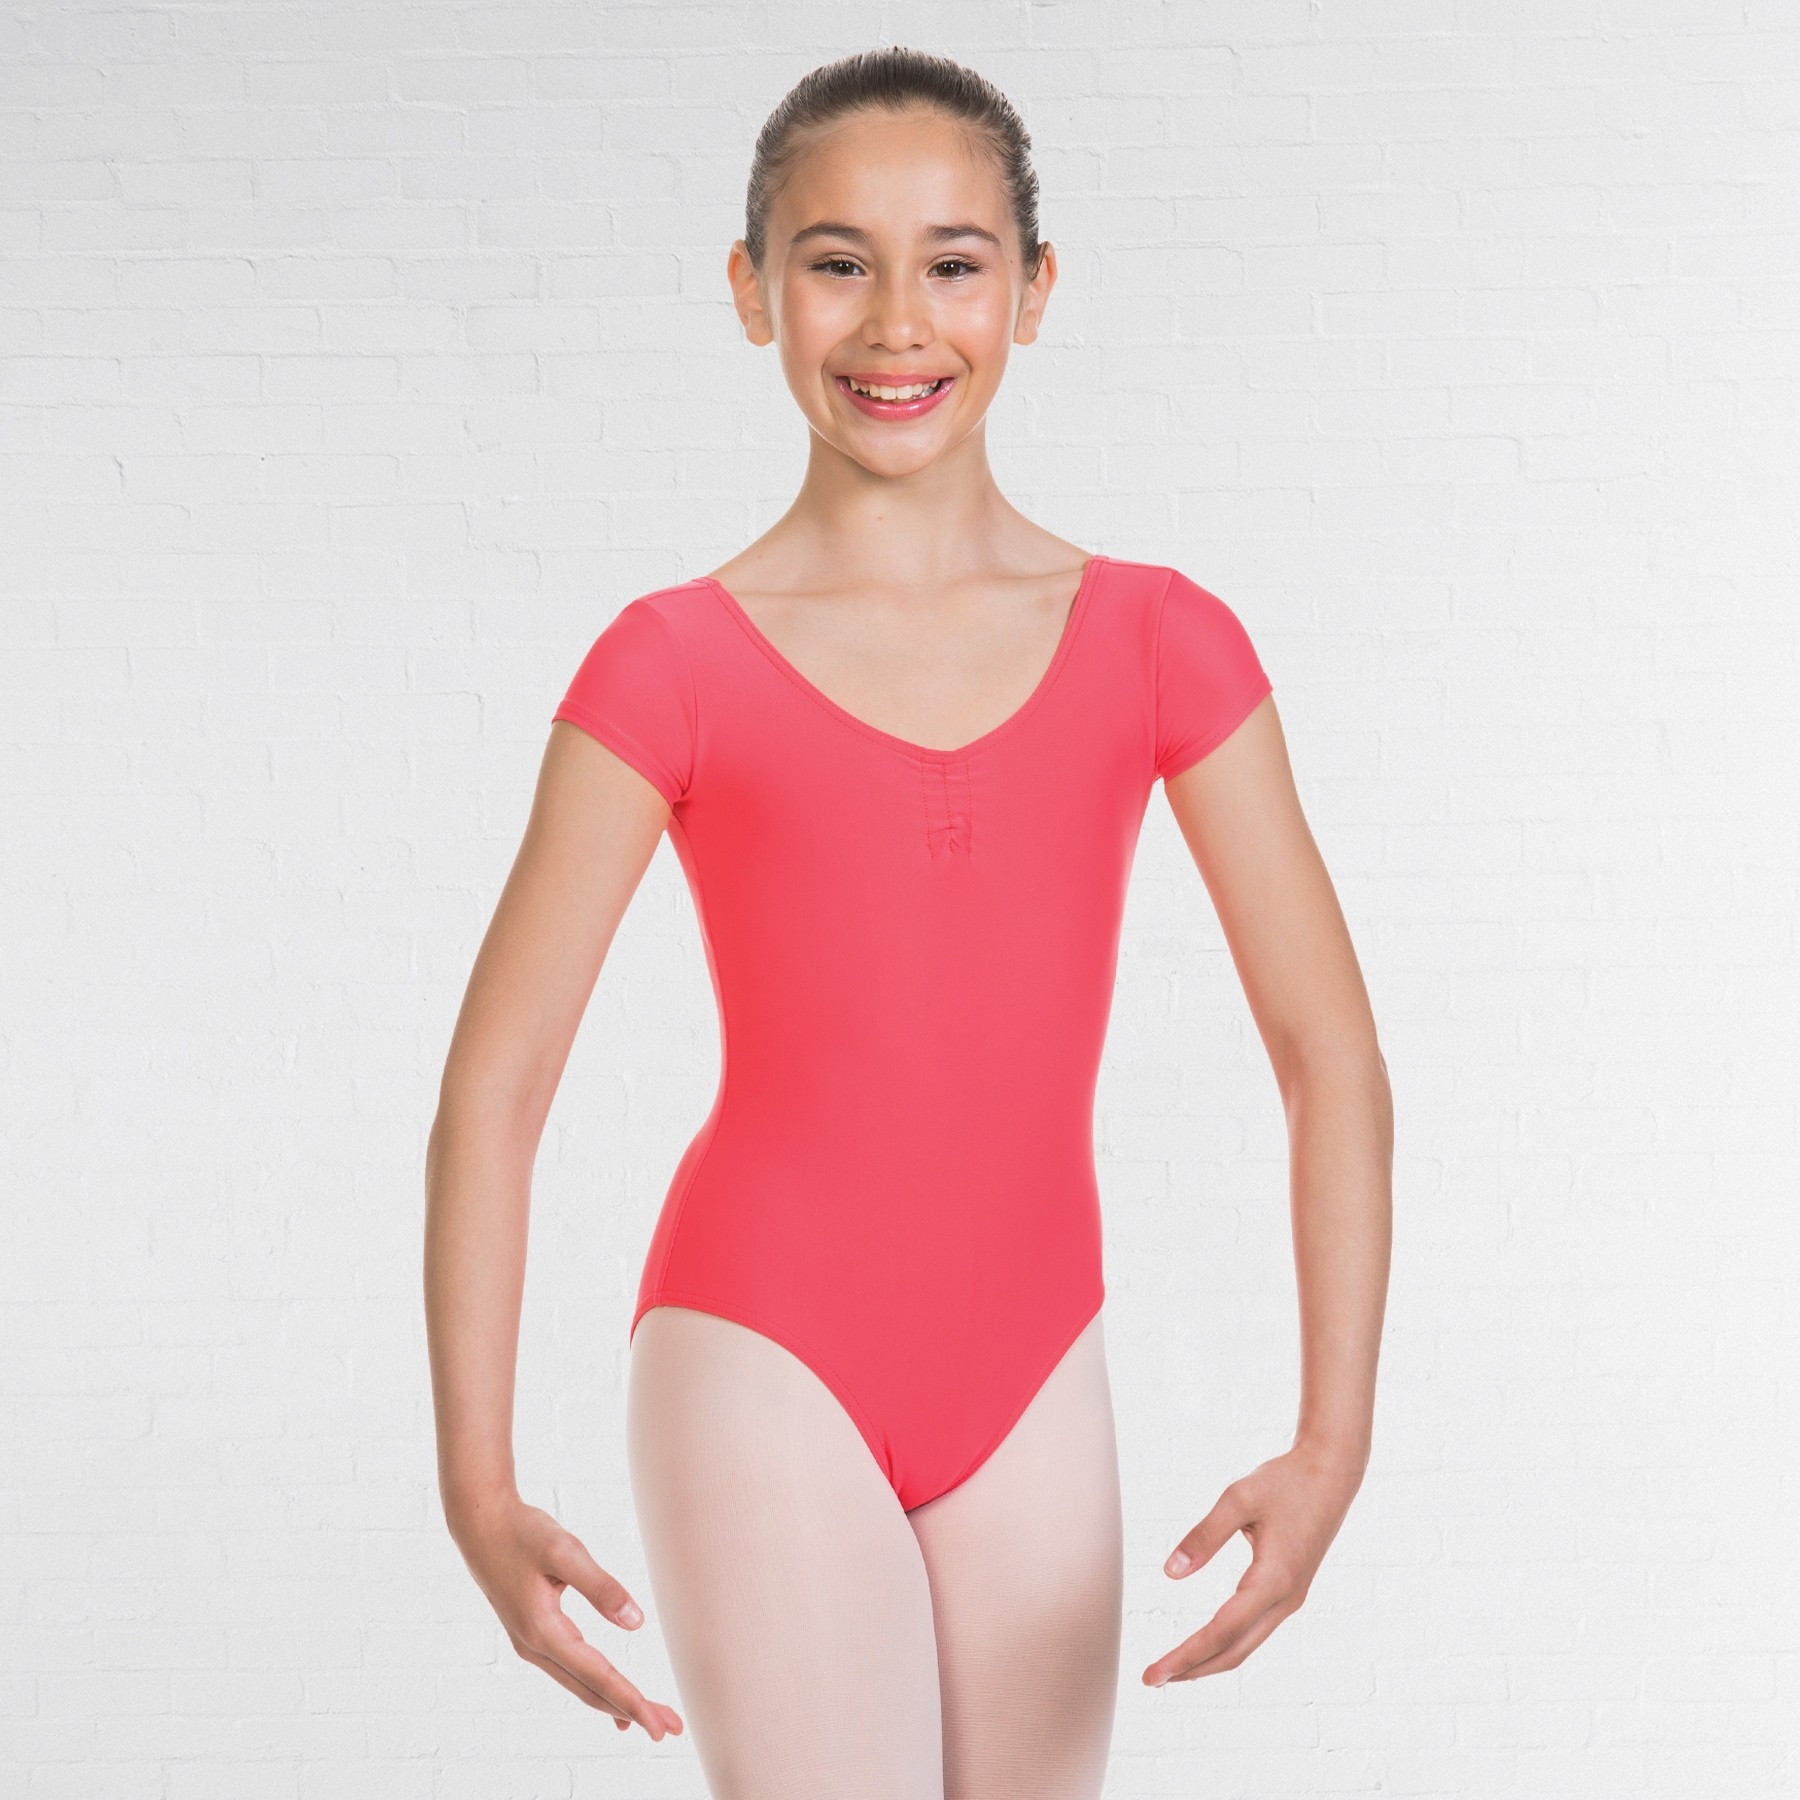 1st Position Alice Cap Sleeved Ruched Leotard (Matt Nylon) (Coral)